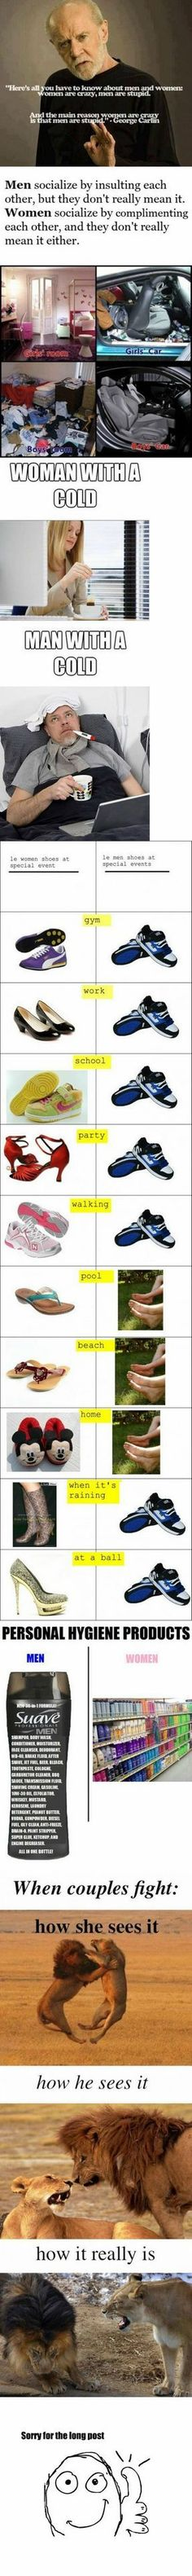 Difference Between Men And Women. This is soo true/